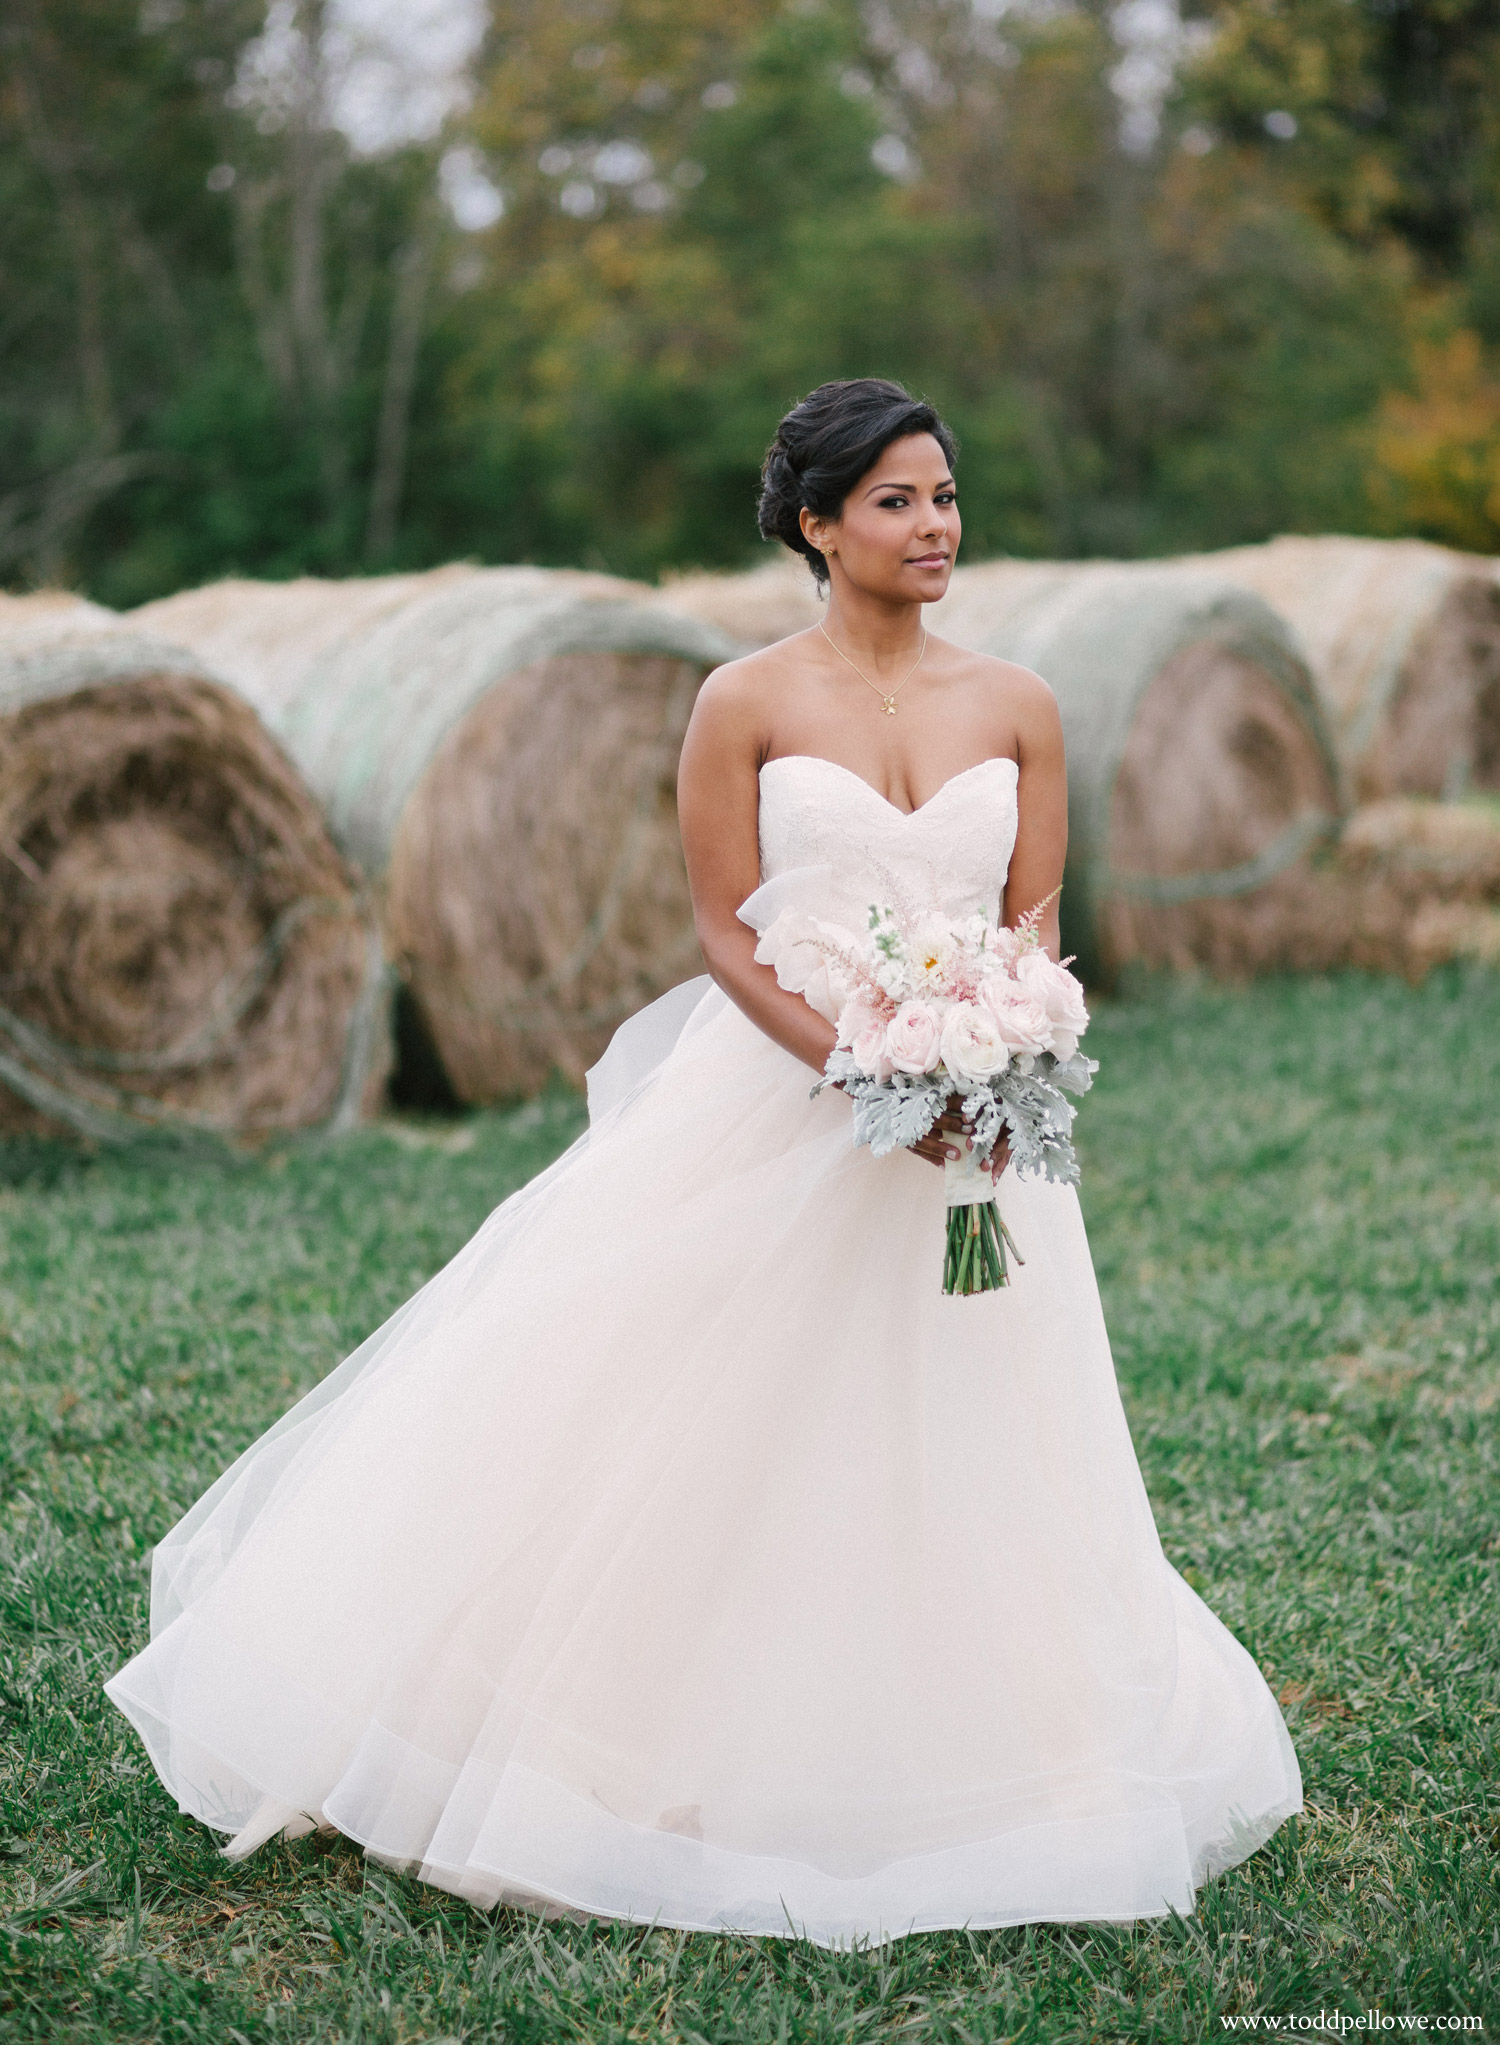 12-foxhollow-farm-kentucky-wedding-128.jpg